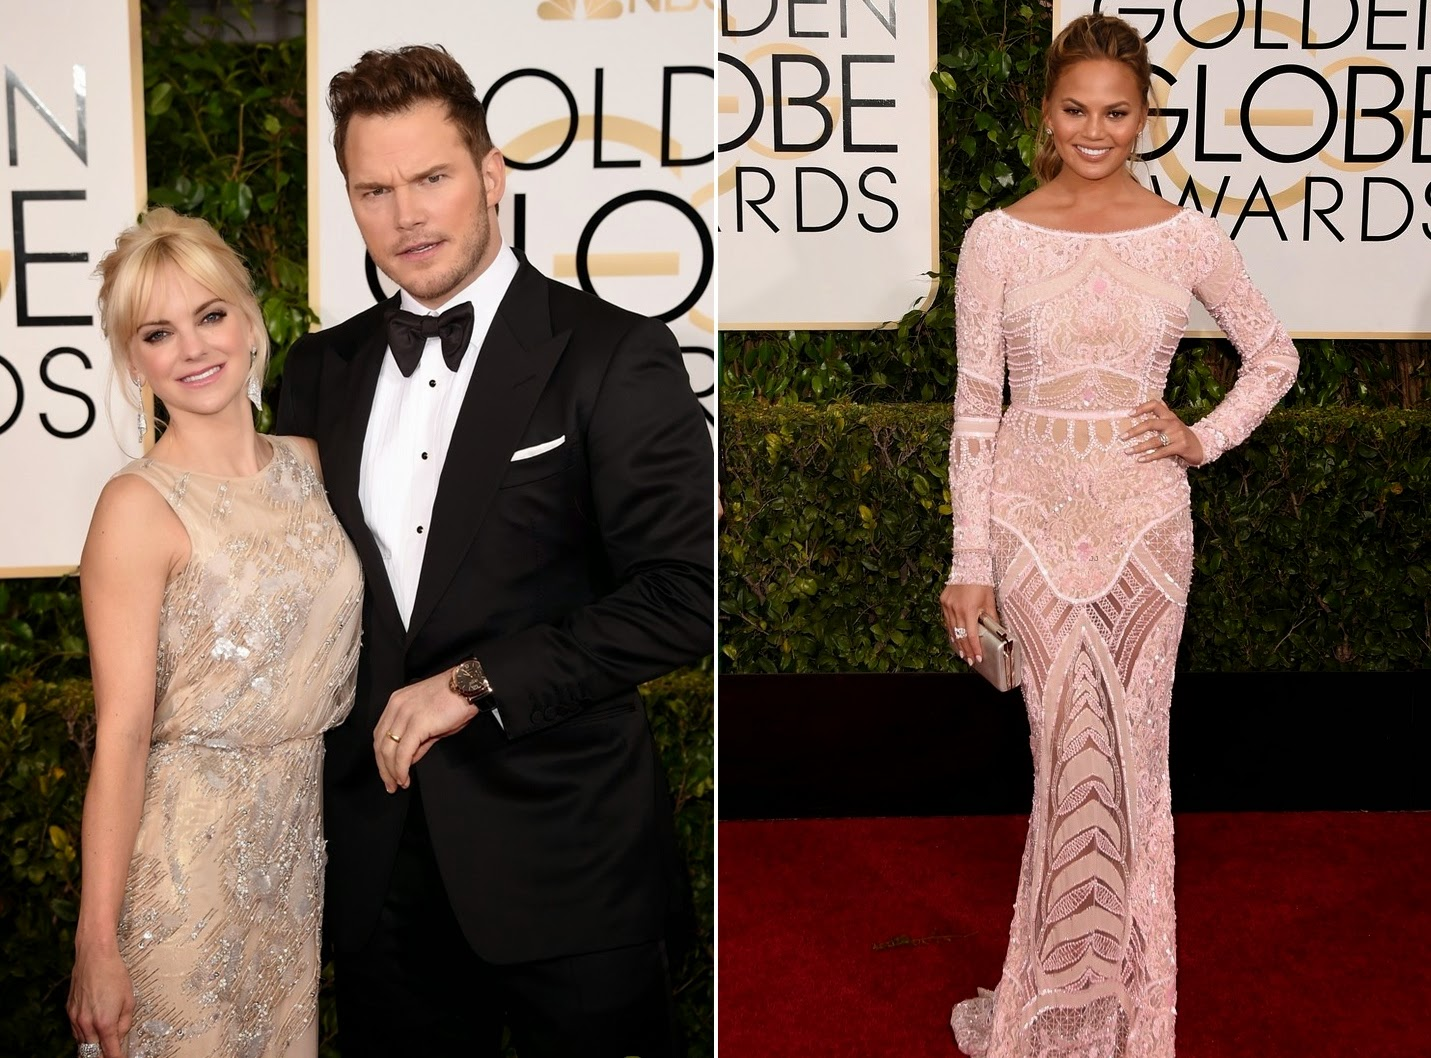 Os looks do Globo de Ouro 2015